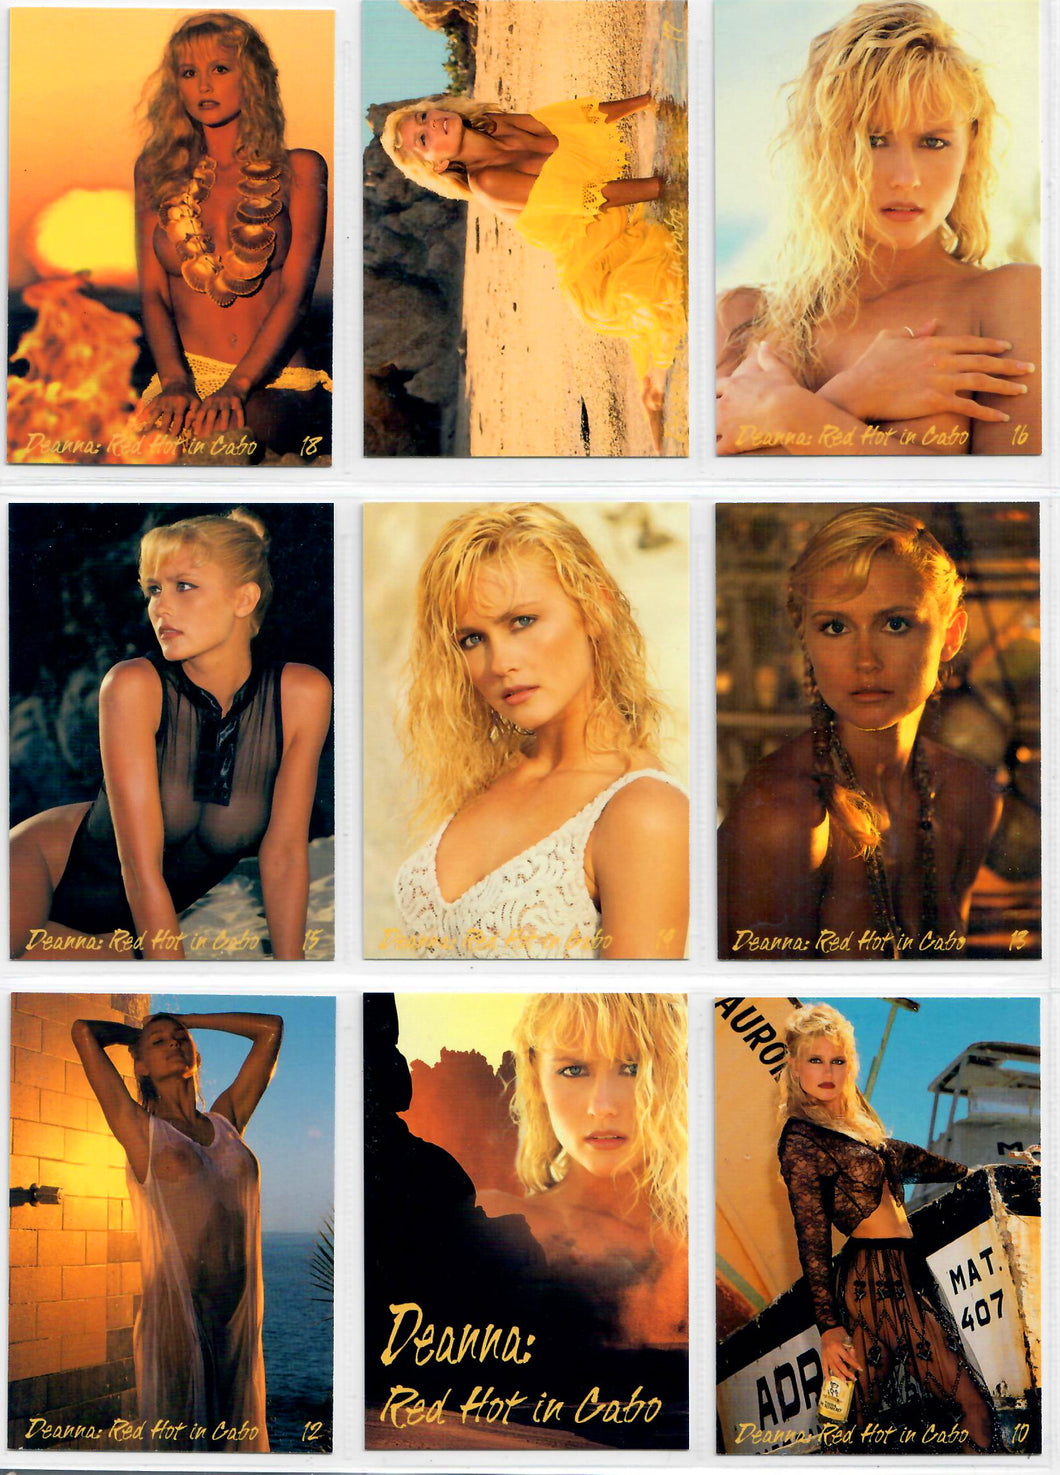 Image 2000 - Deanna Merryman - Red Hot In Cabo - Complete 18 Card Set w/Cover Card